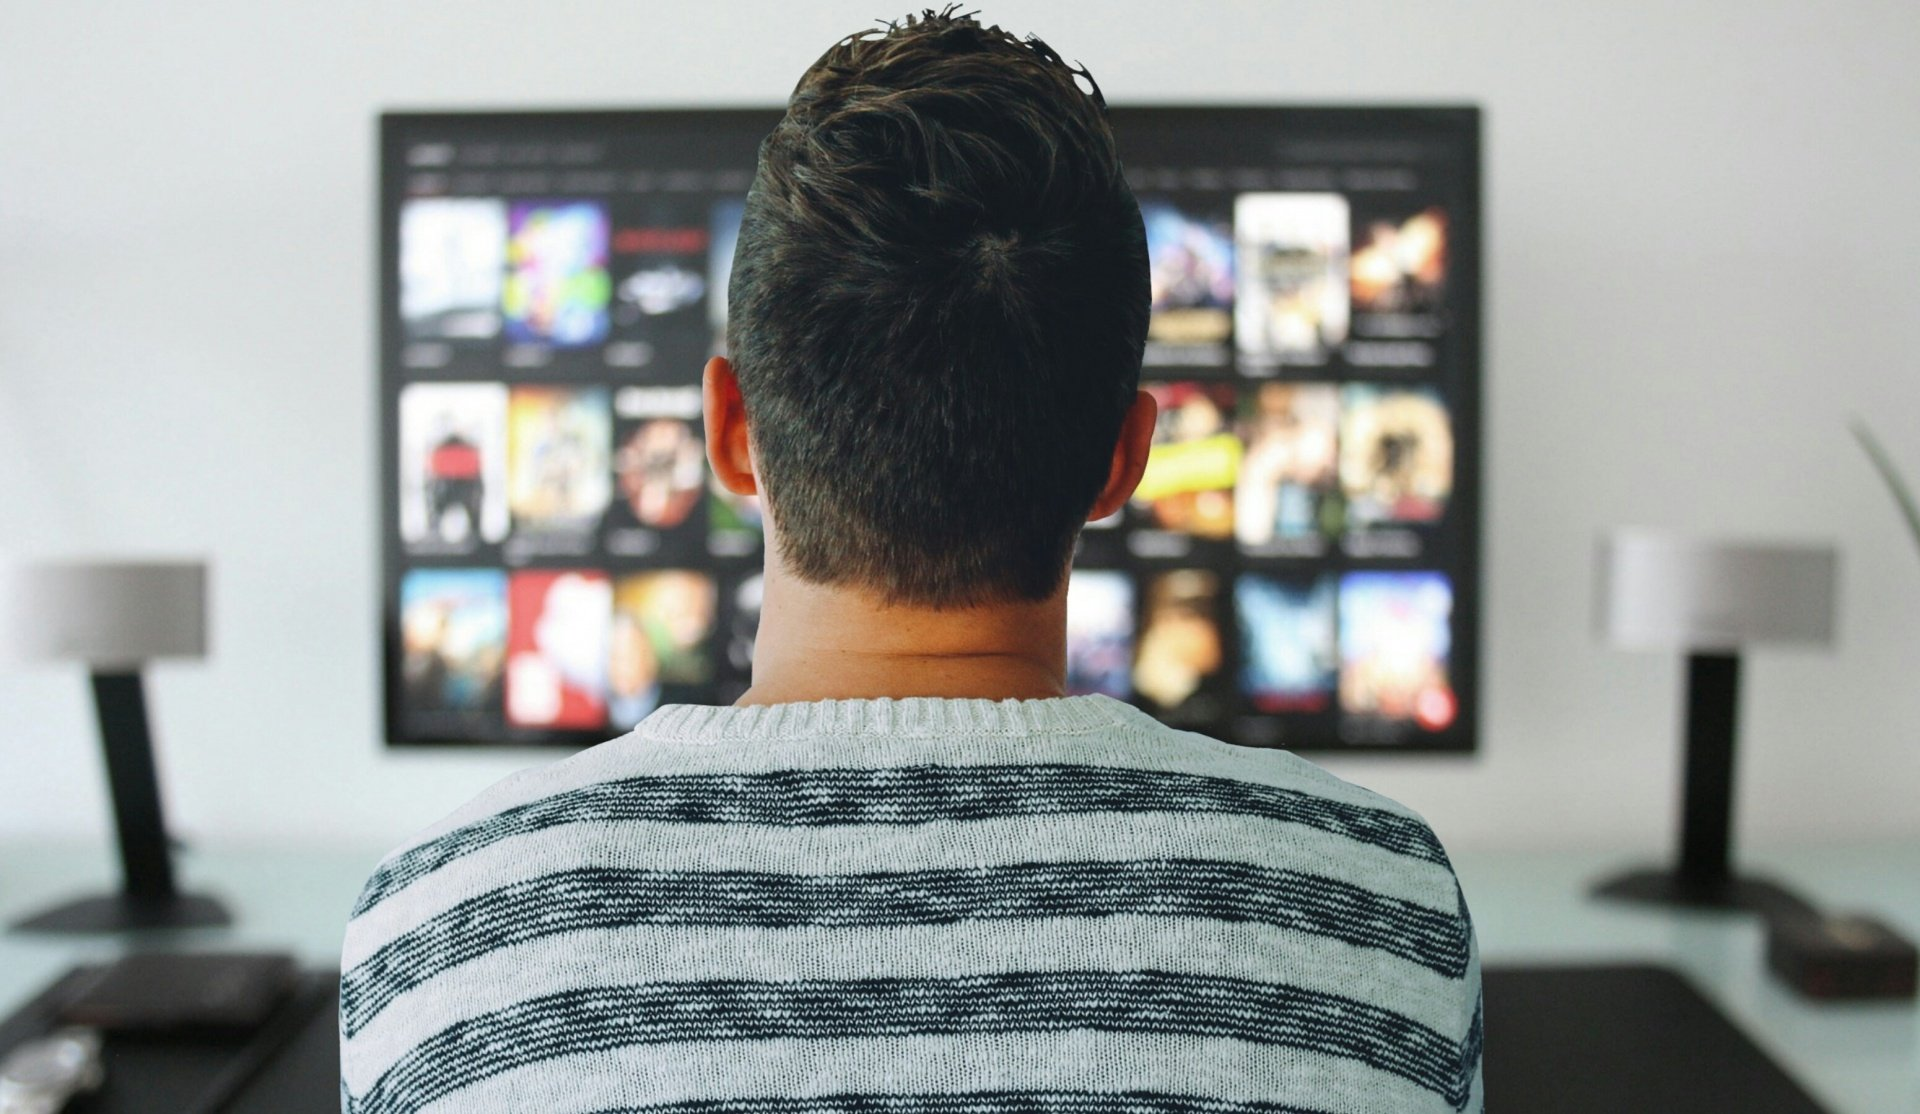 Prices are reportedly set to increase on TV licence, broadband and other essential services